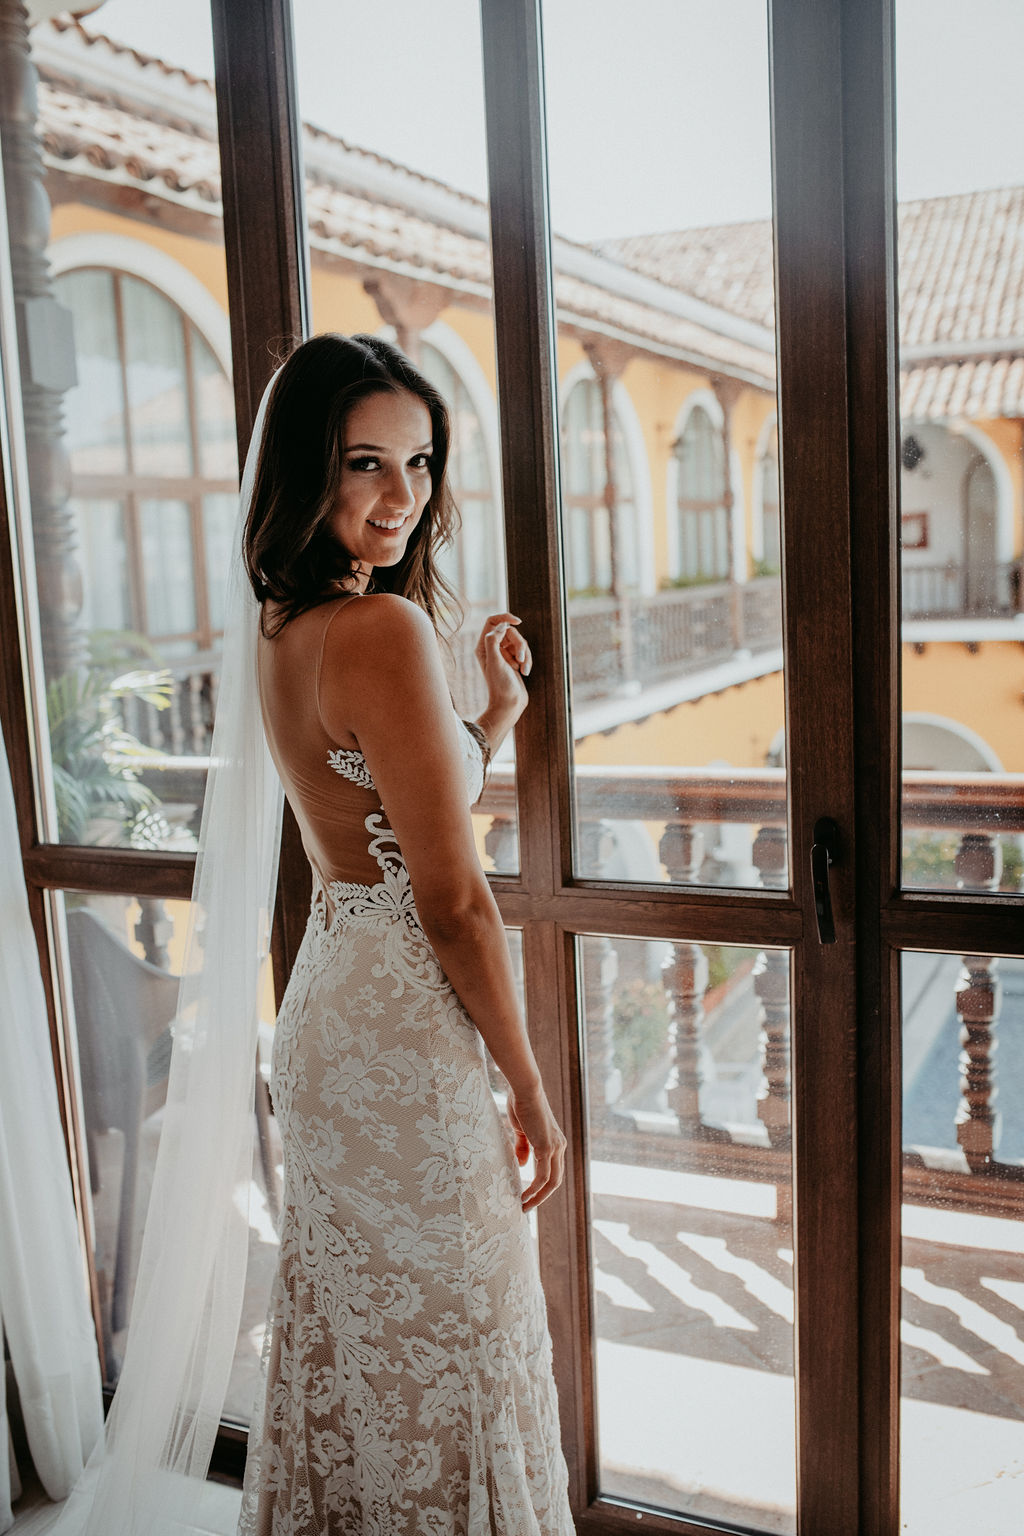 julieth-bravo-wedding-planner-dress-bride-vivian -beltran-destinationwedding-colombia-viviana-beltran.jpg